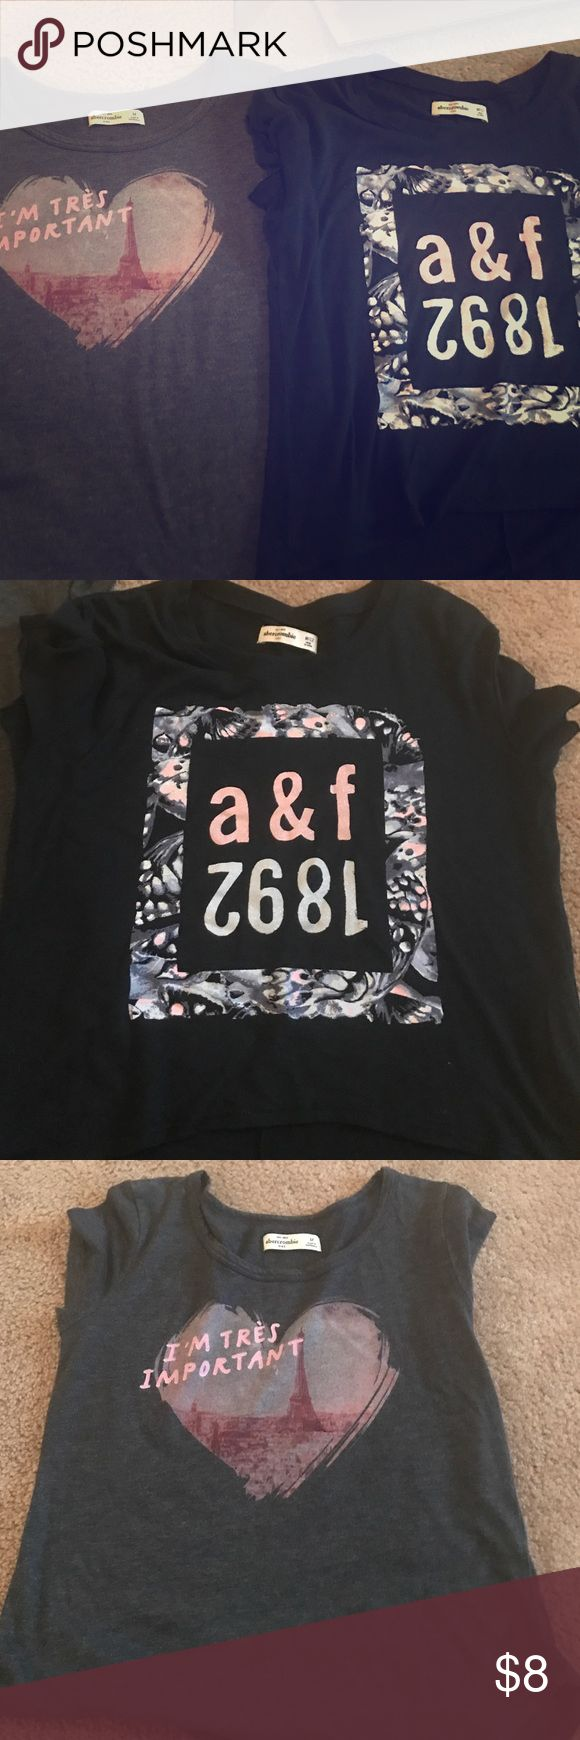 Bundle two Abercrombie girls t shirts size medium Grey t with Eiffel Tower and wider blue t with logo. Medium / age 12. Smoke free home Abercrombie & Fitch Shirts & Tops Tees - Short Sleeve